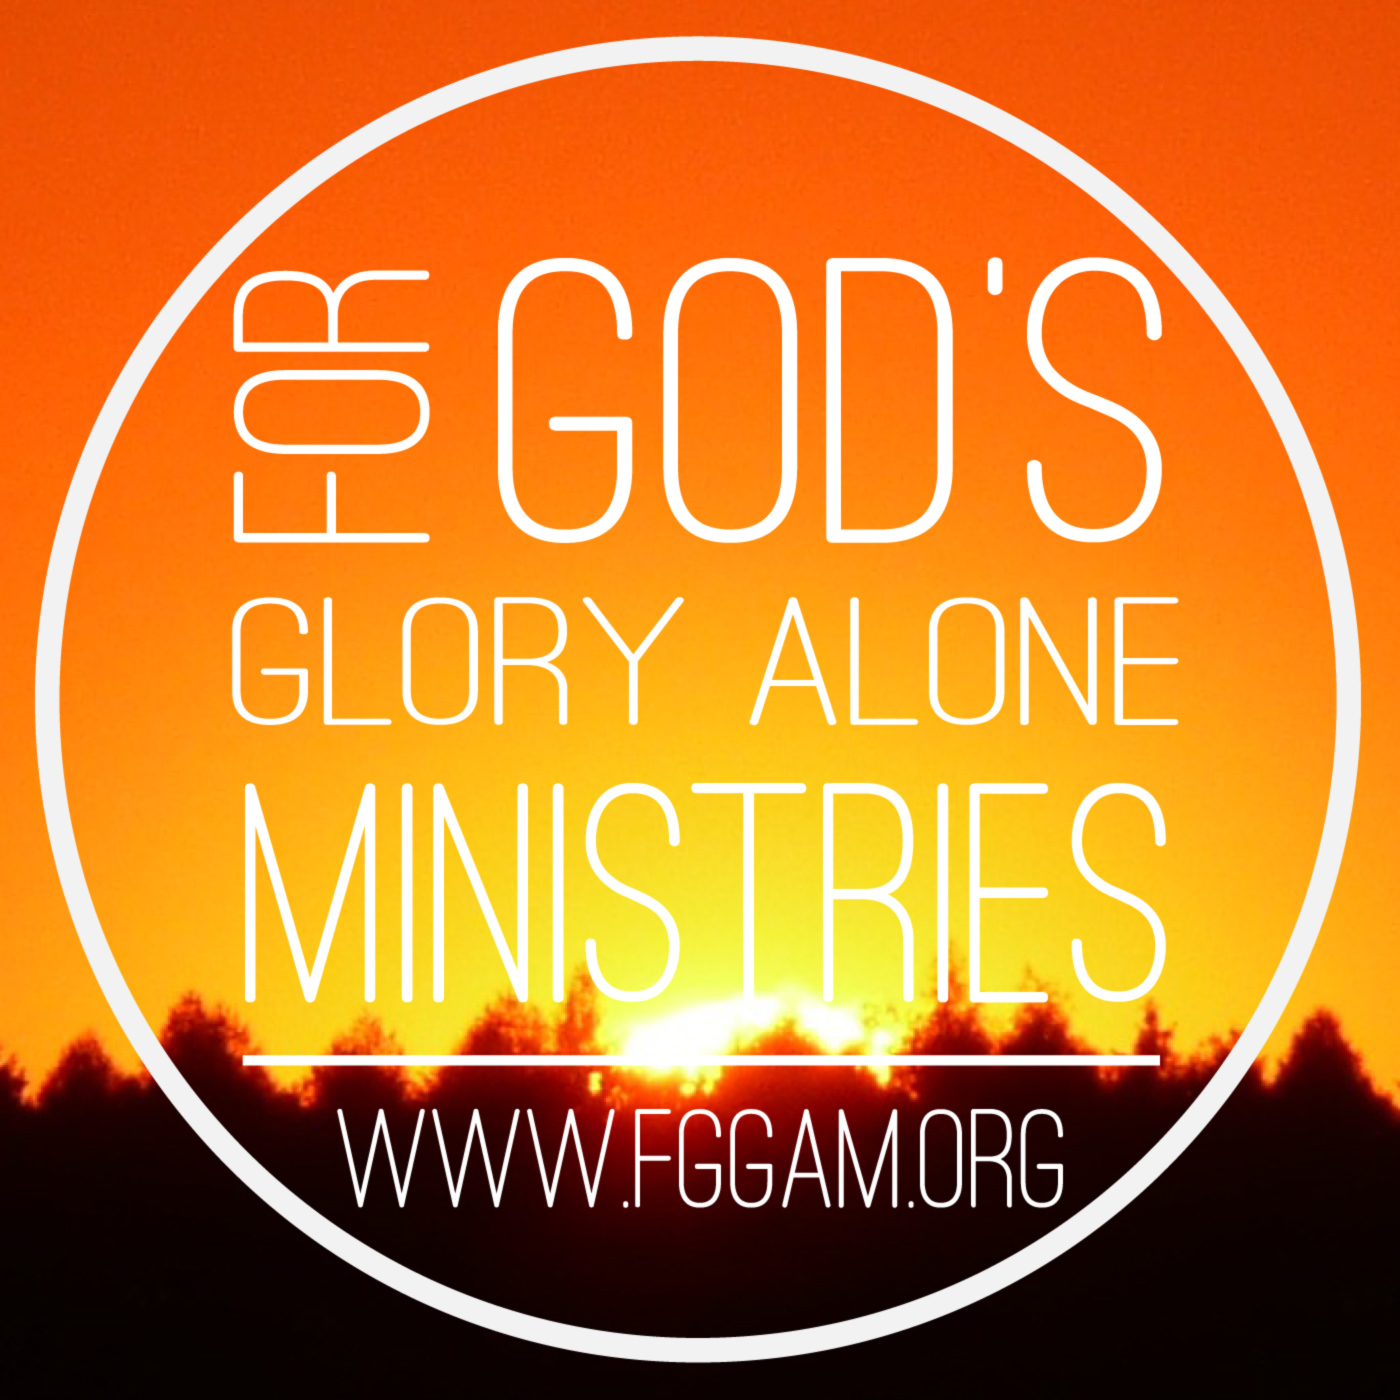 For God's Glory Alone Ministries